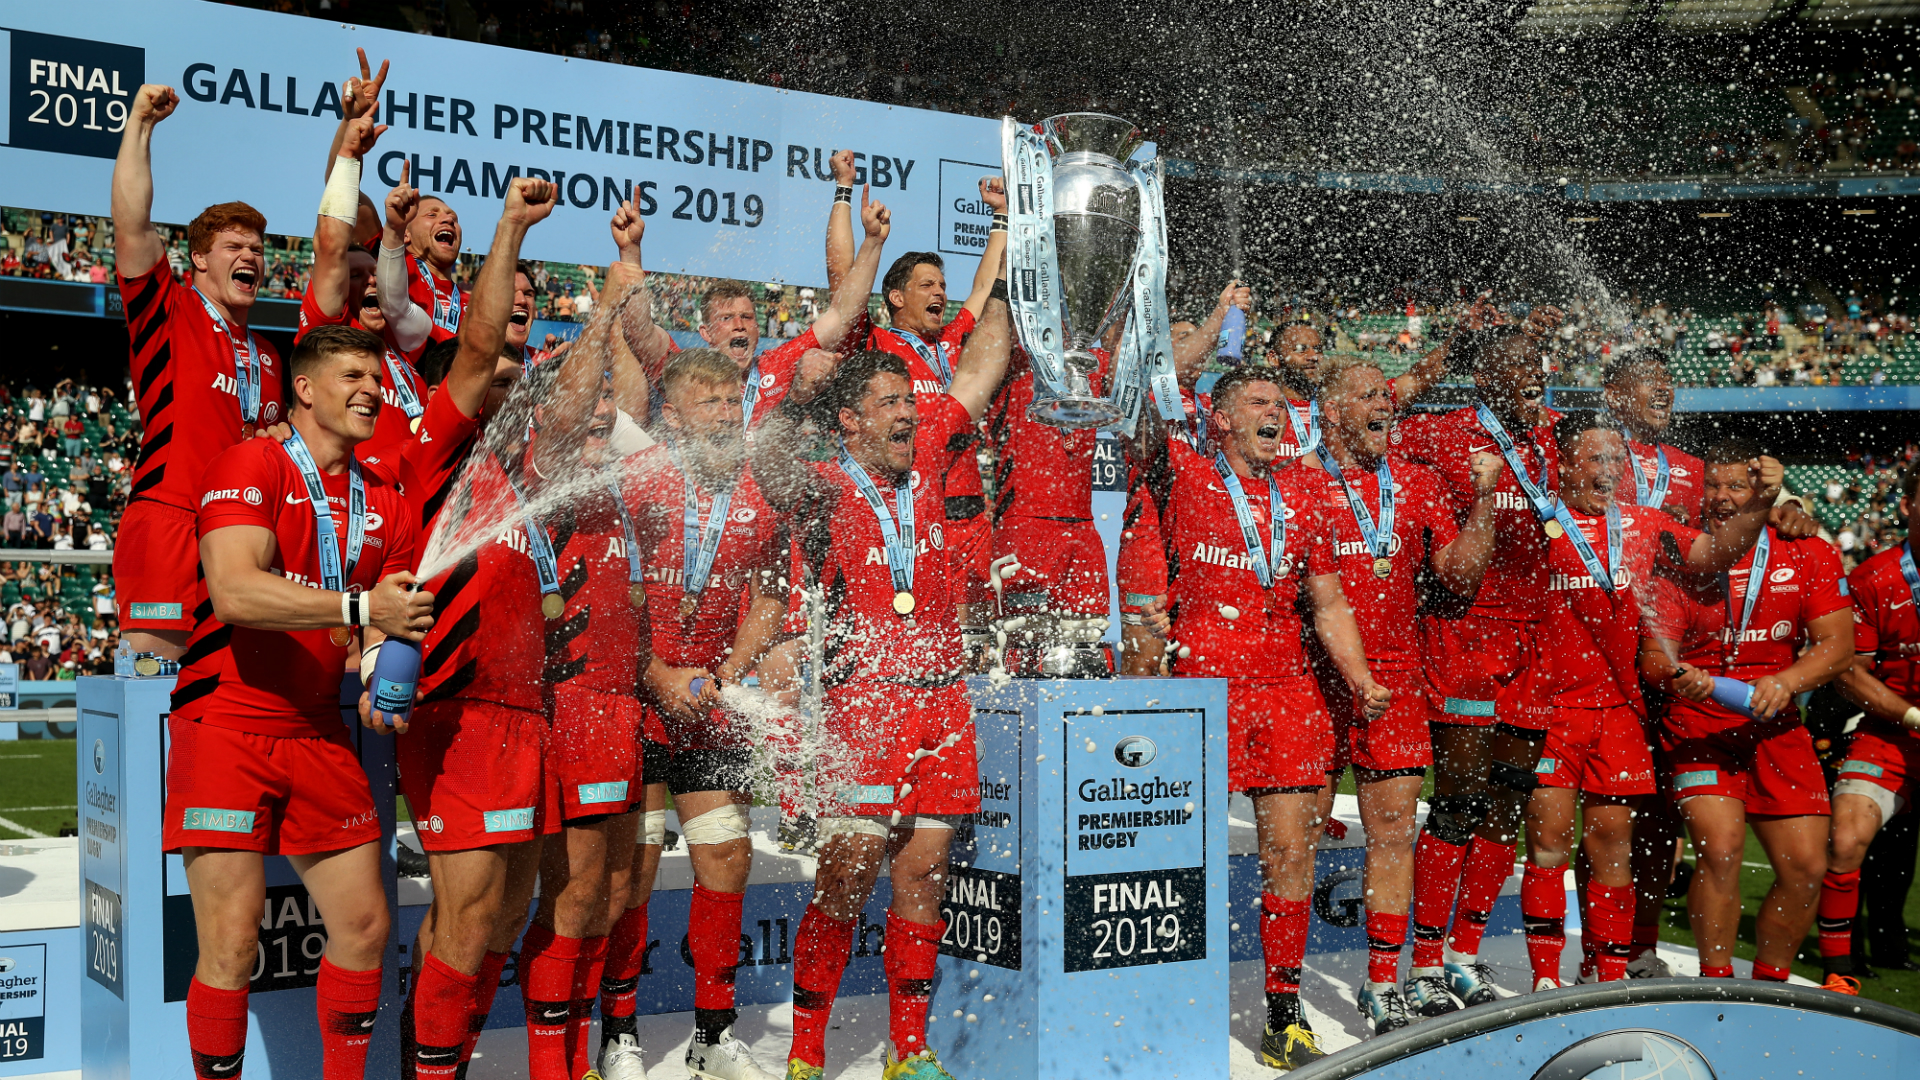 Shamed Saracens bid to 'rebuild confidence and trust'